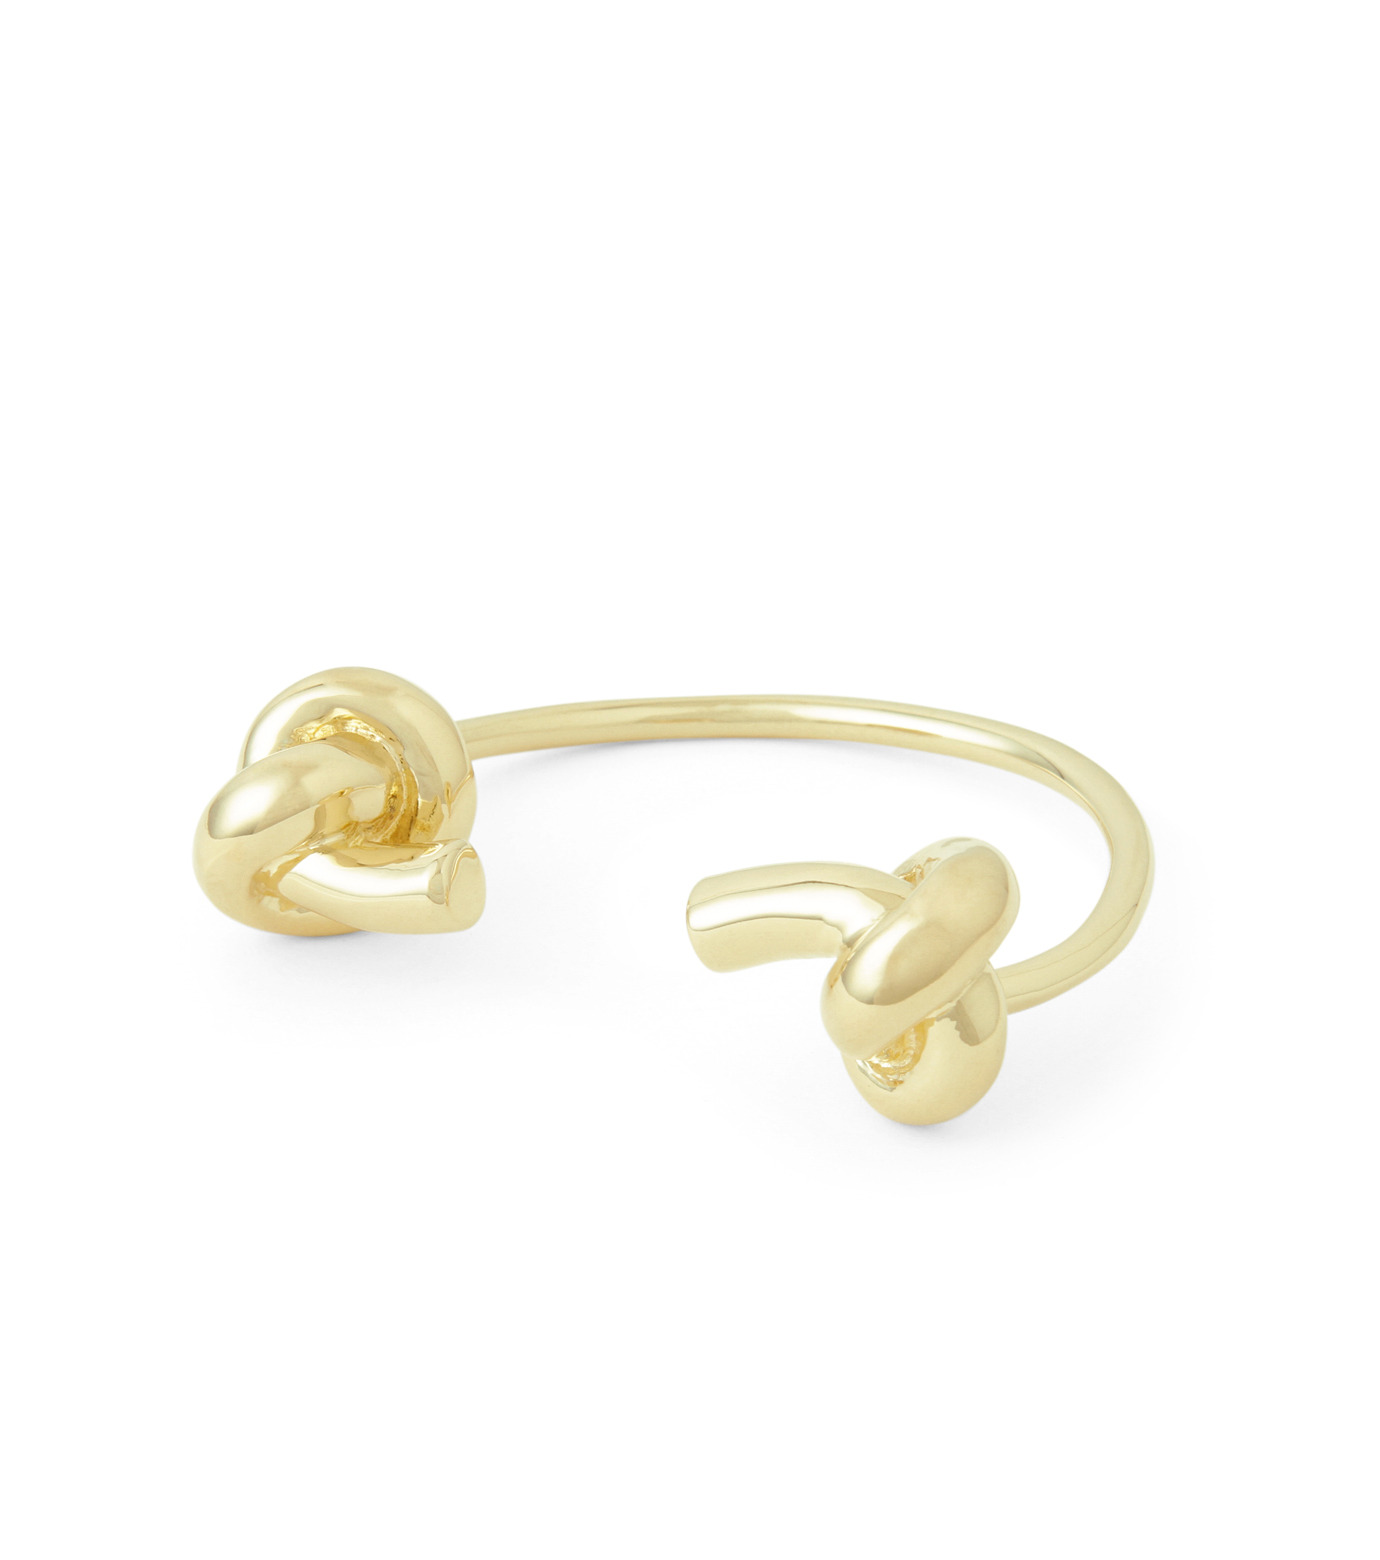 Jennifer Fisher(ジェニファーフィッシャー)のLarge Double Knot Cuff-GOLD-Knot-Cuff-L-2 拡大詳細画像1